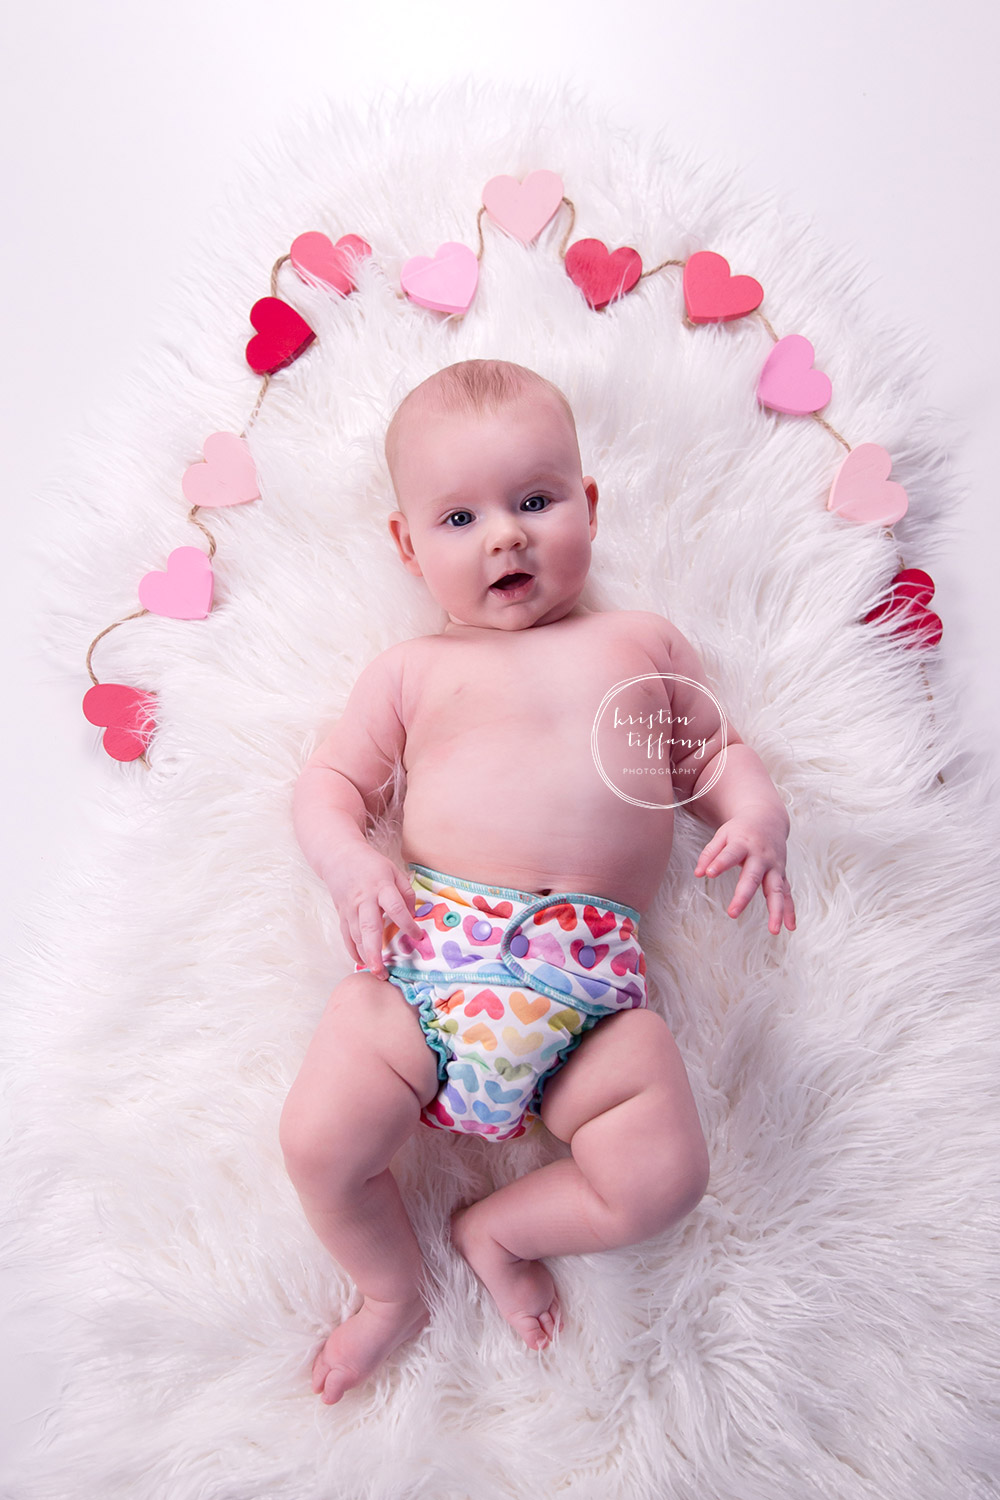 a photo of a baby girl surrounded by hearts in a heart cloth diaper